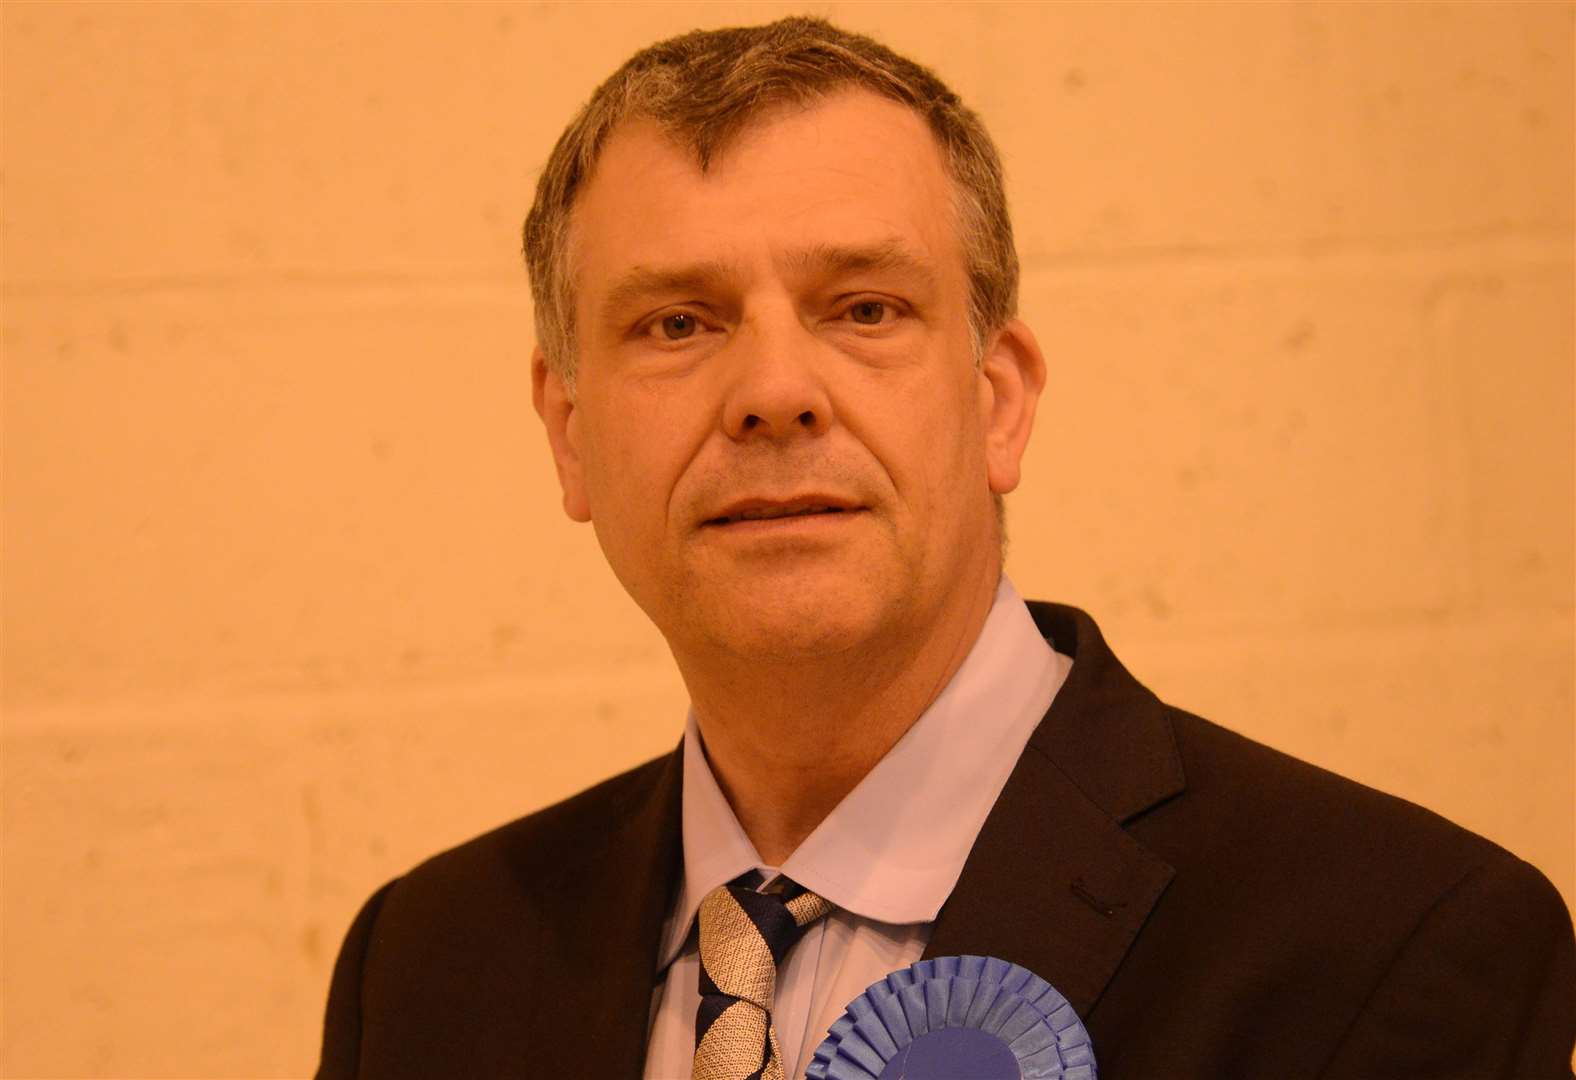 Cllr Paul Bartlett (Con) lives close to the site in Sevington